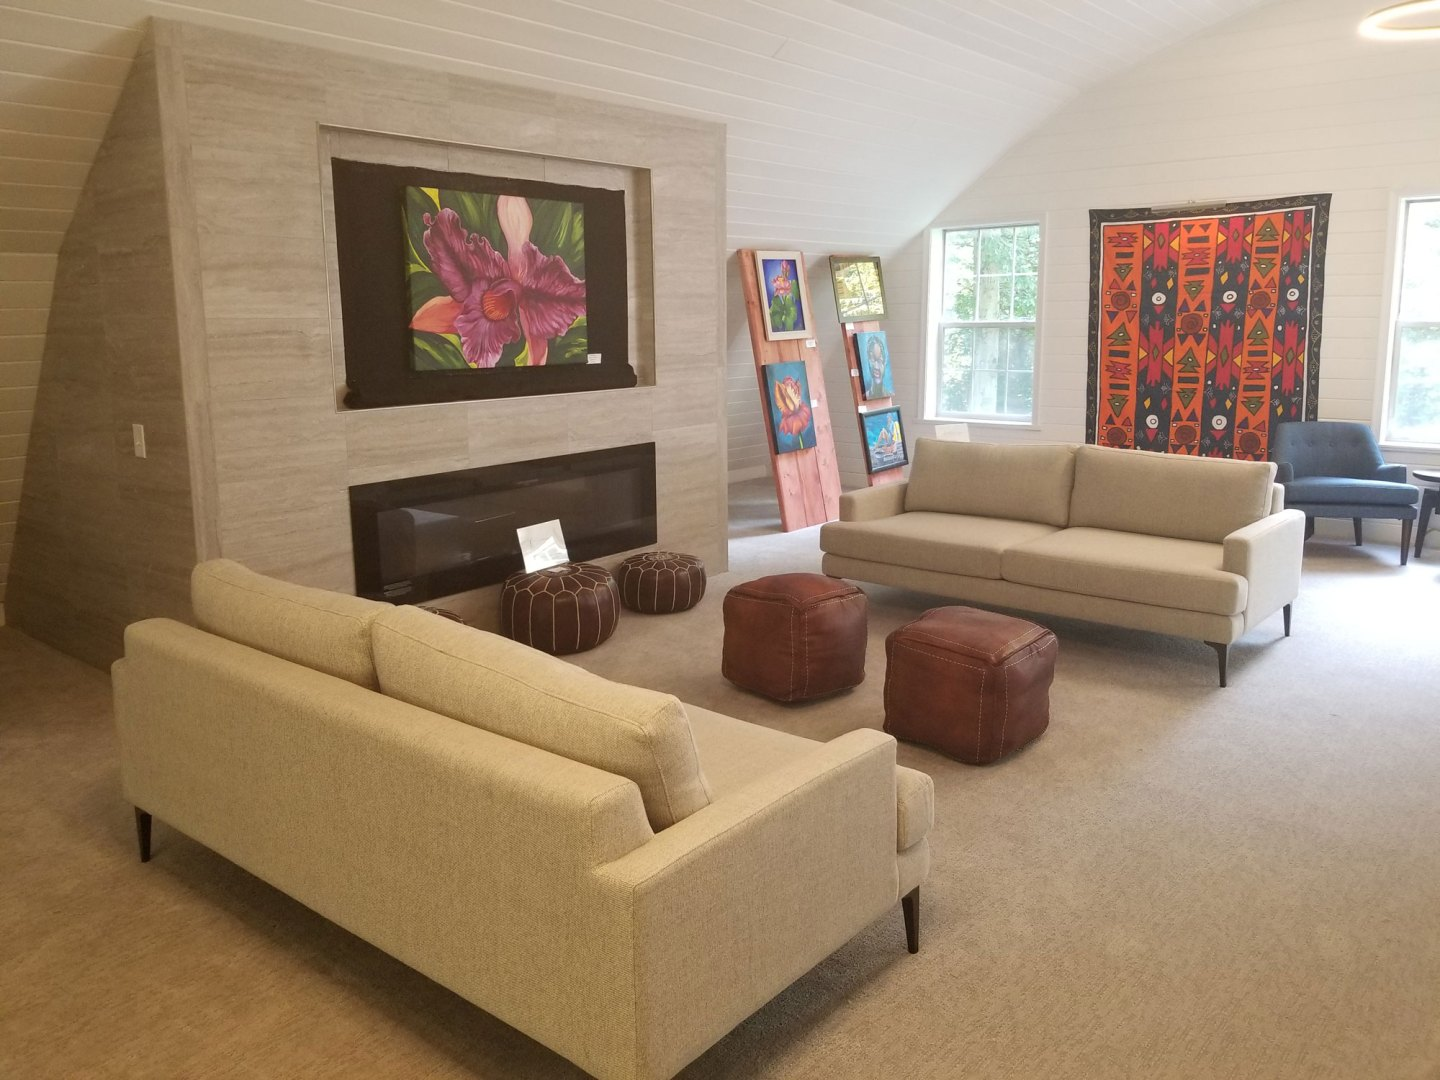 wellspring-spa-DC-barn-upper-level Black-Owned Bed & Breakfast in Maryland: How to Host an Event in an Intimate Venue